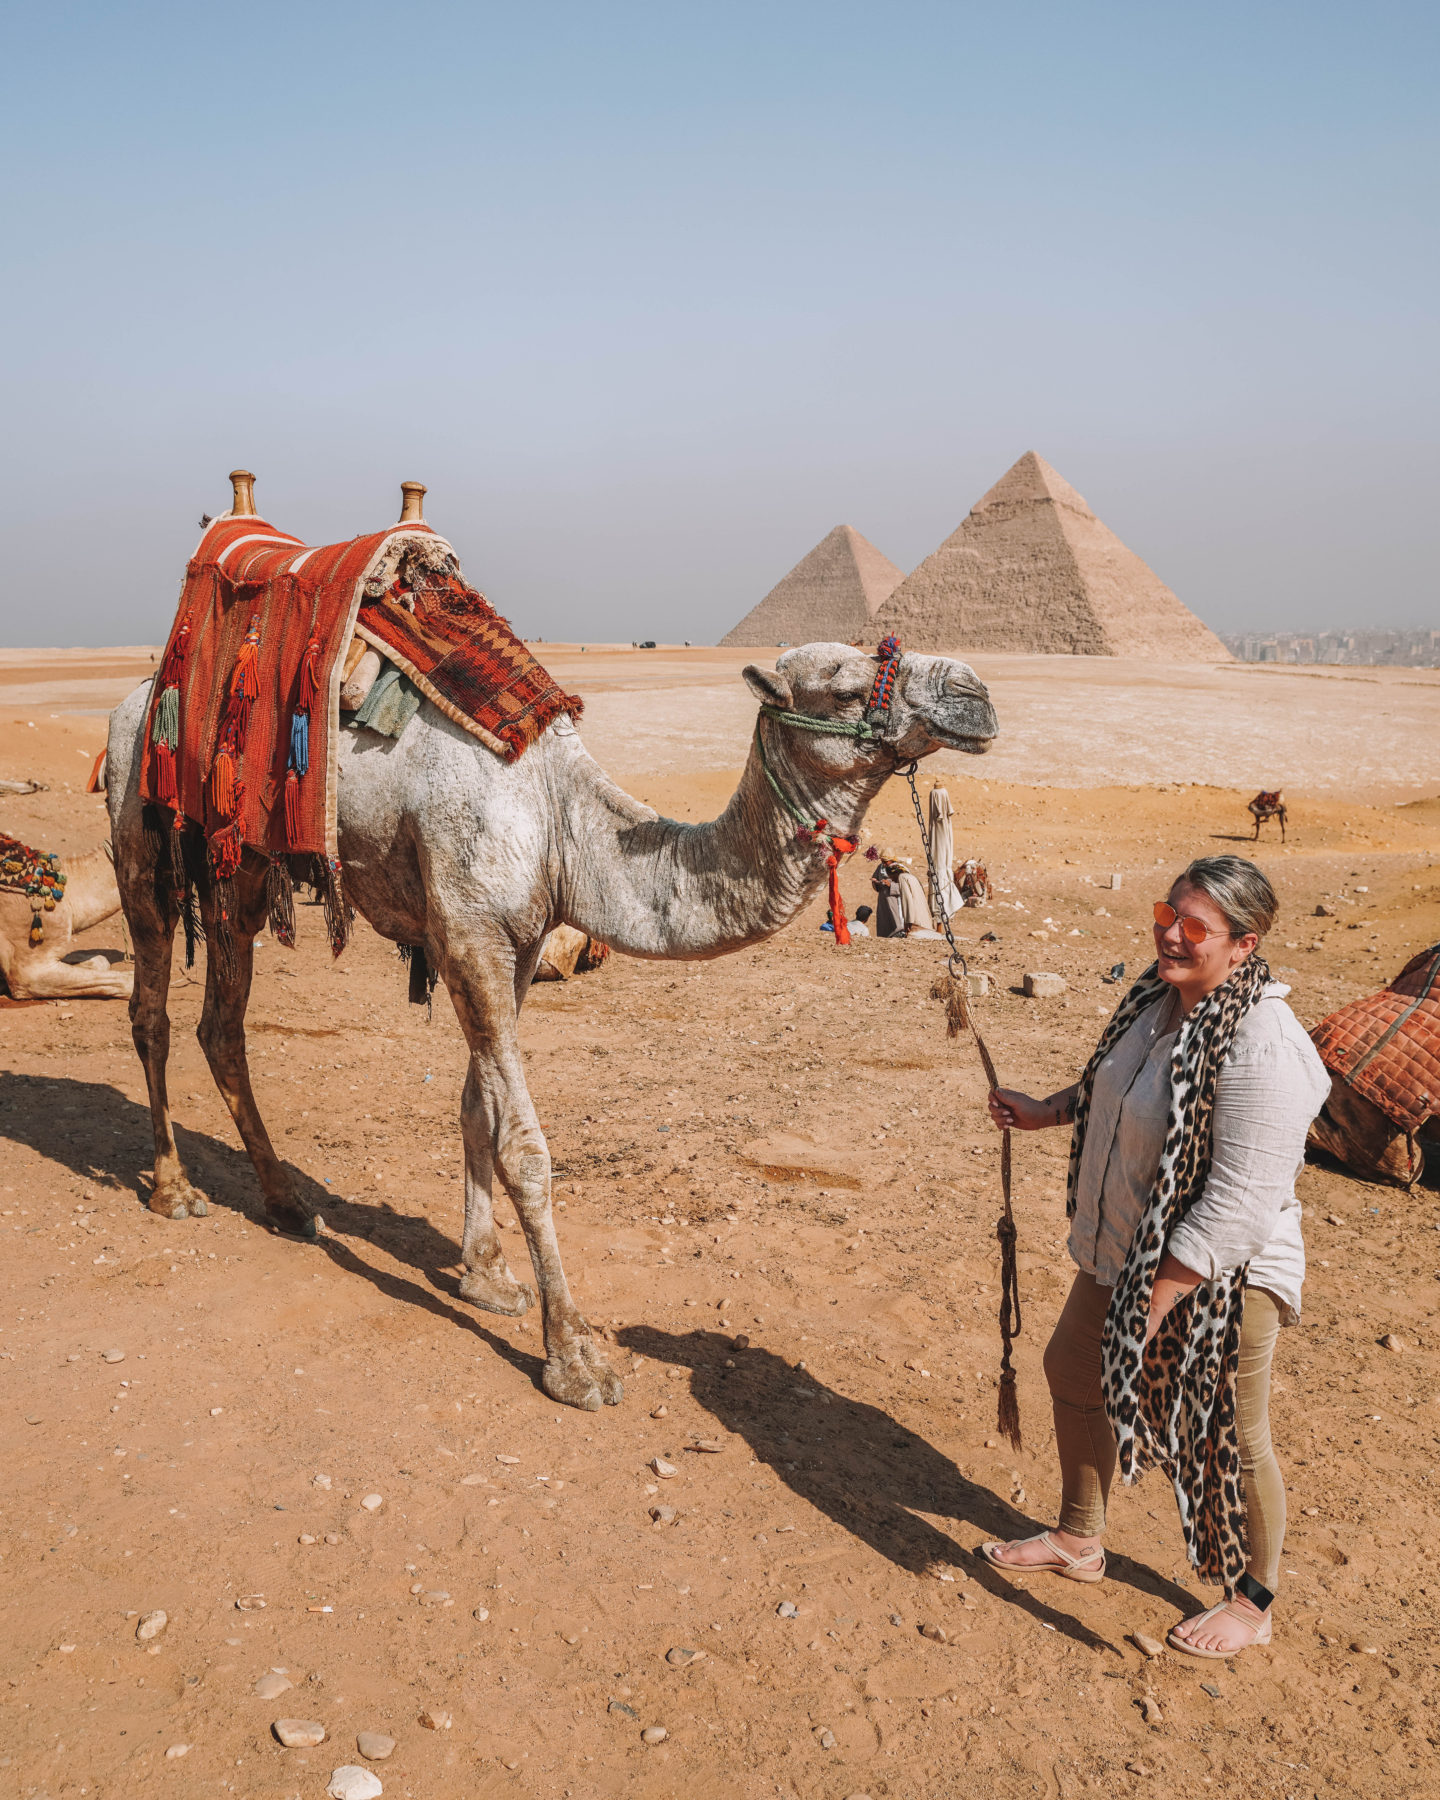 standing with pyramids in the distance next to a camel friend | egypt itinerary